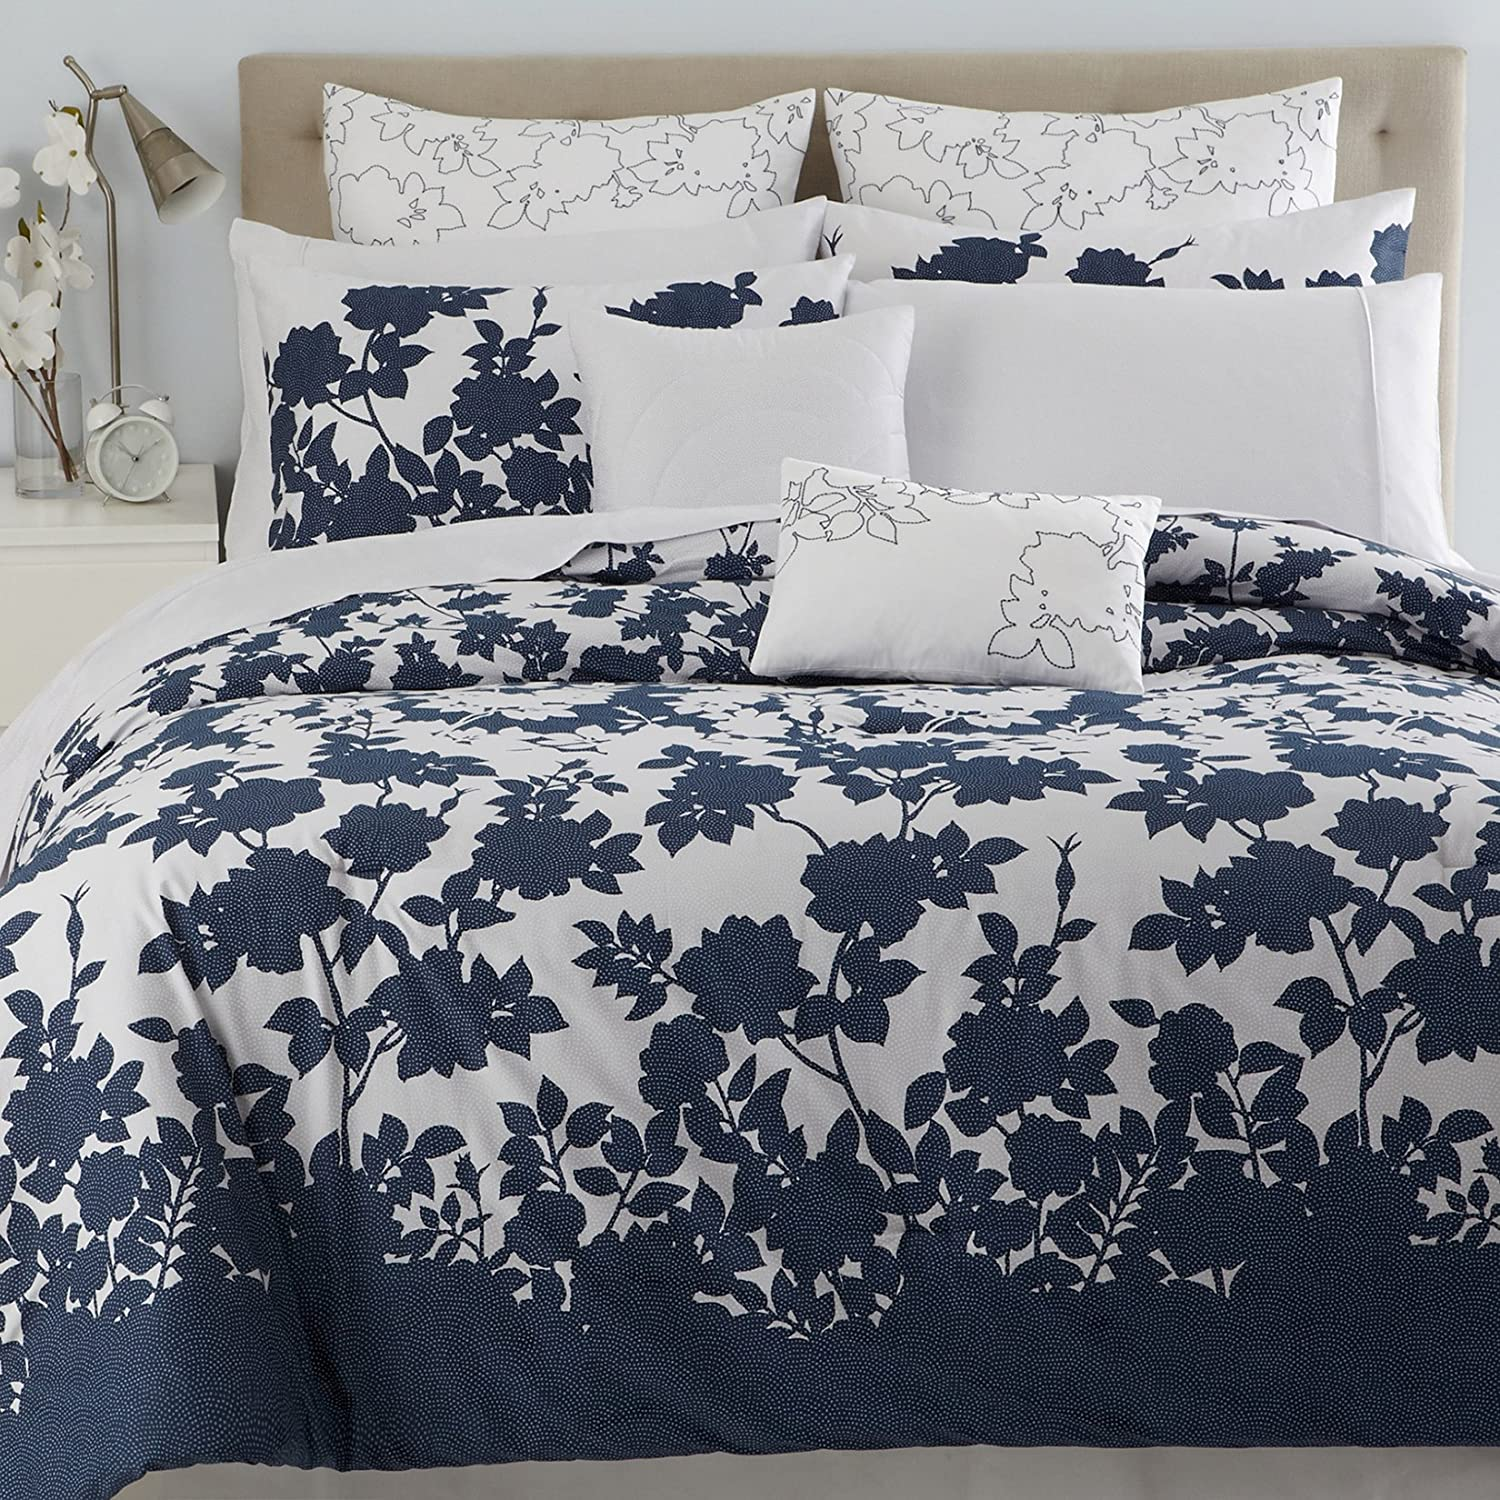 barry barbara comforter new poetical bed set sets colette silver bedding york king by j queen